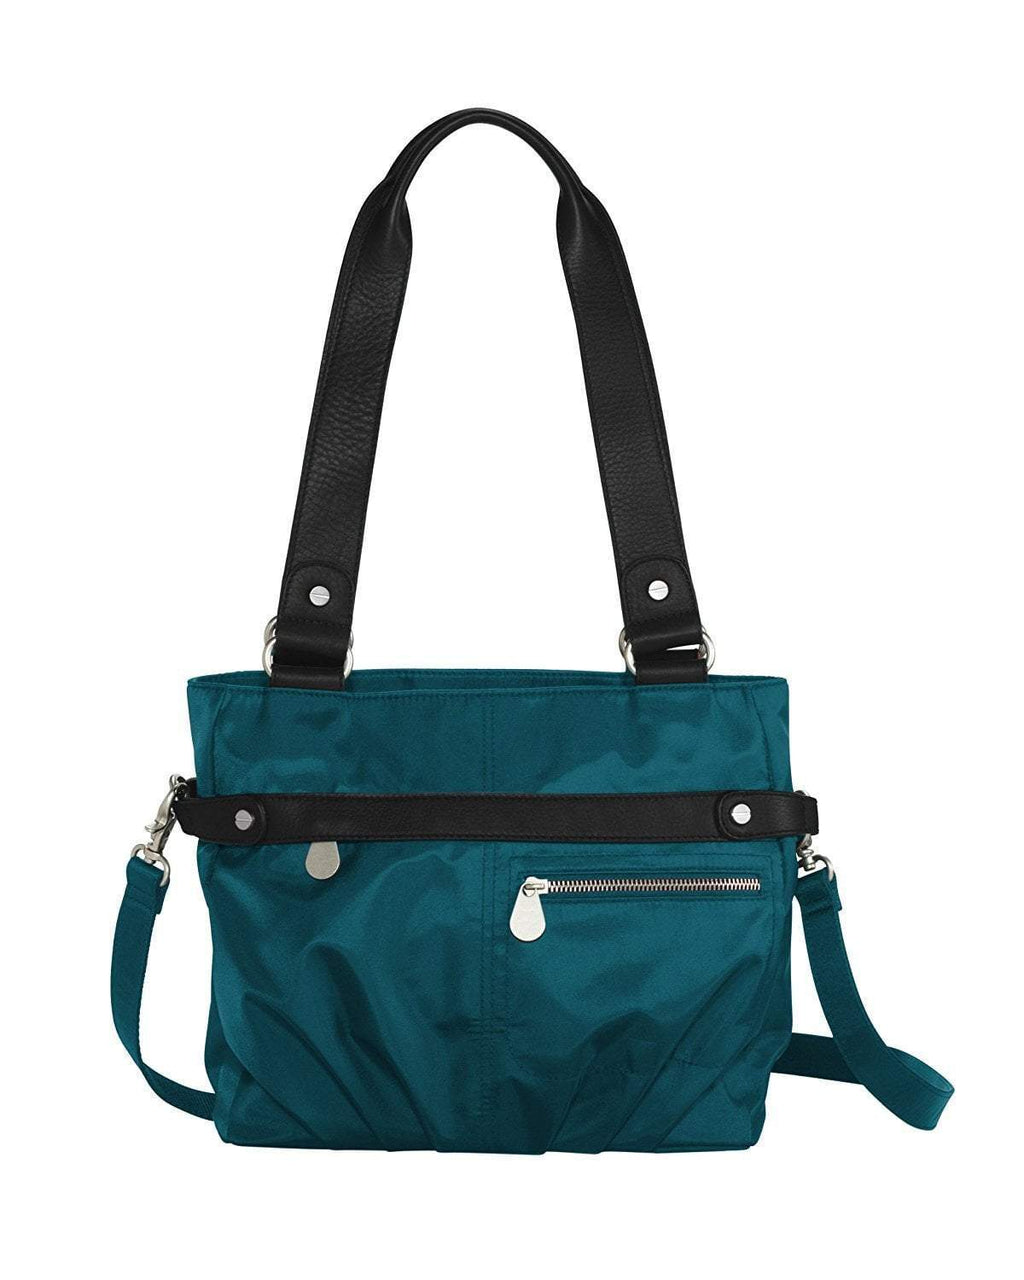 Ladies Kathryn Tote - Baggallini